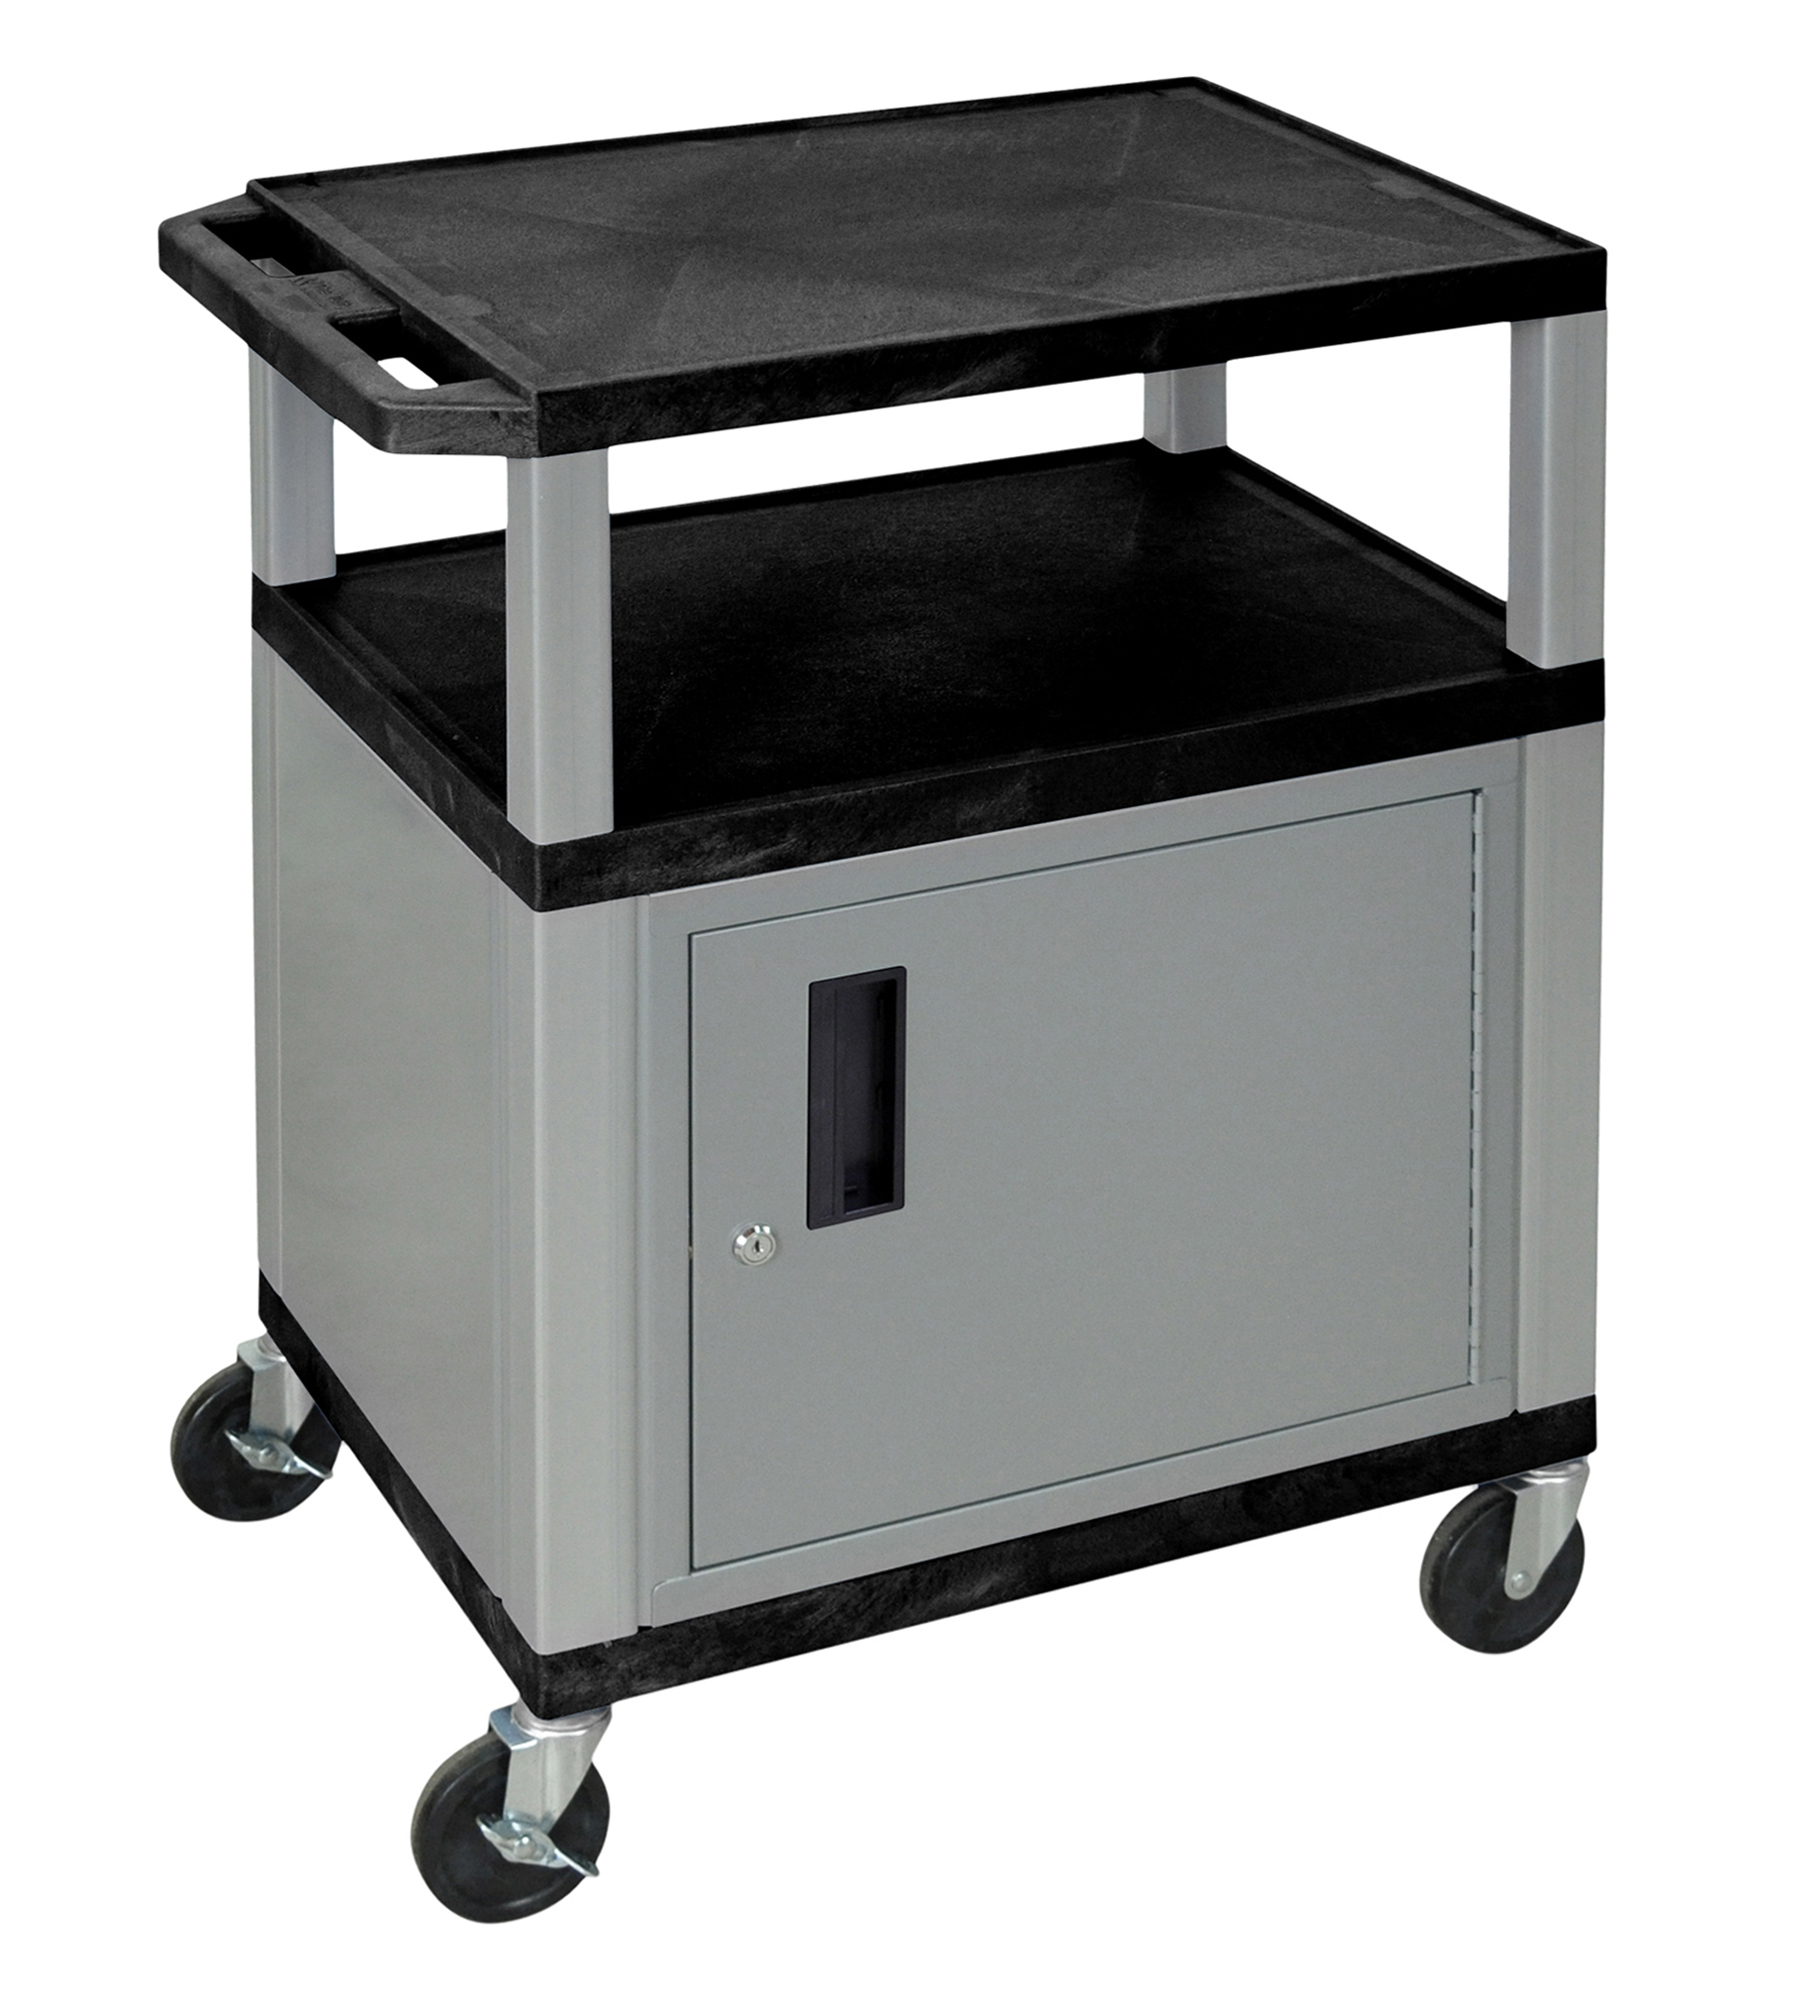 Offex Grey Tuffy Cabinet 34-inch Black Utility Storage Cart